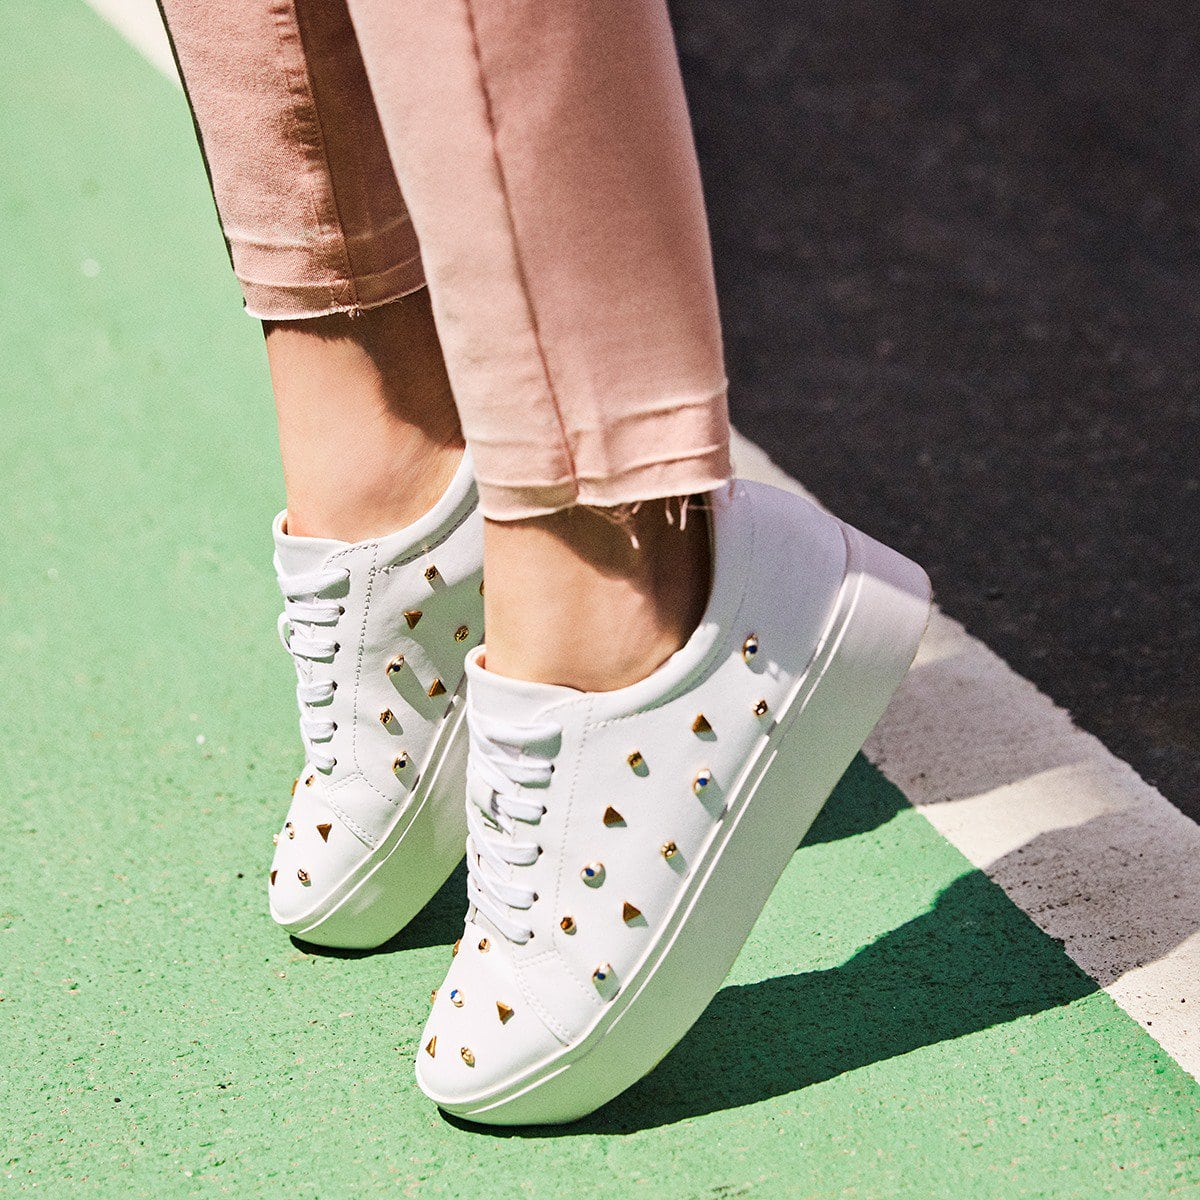 These platform sneakers in smooth Nappa leather boast cute decorations like all-seeing eyes, lips, and gilded shapes